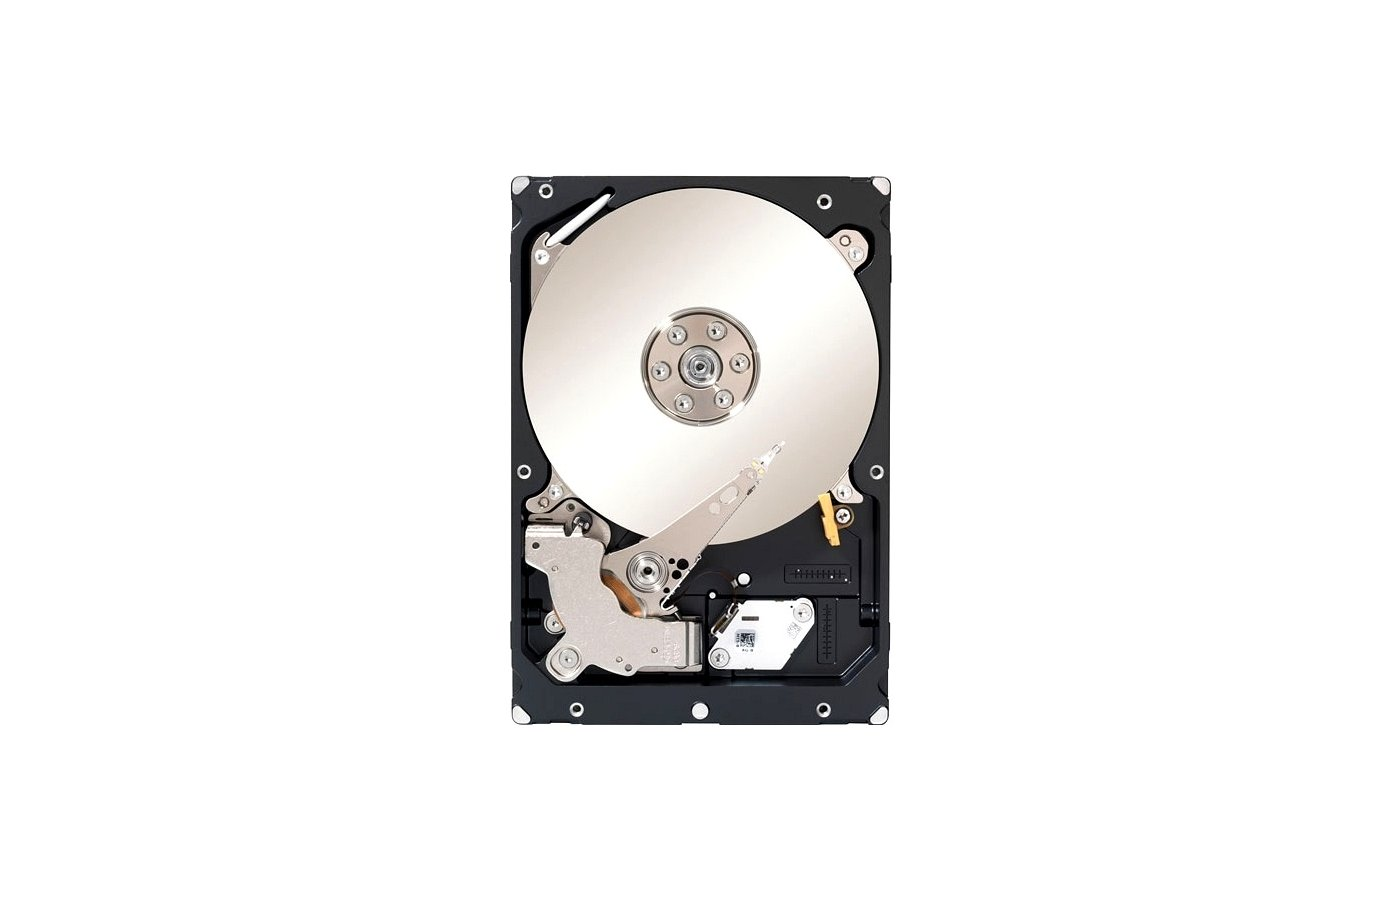 Жесткий диск Seagate SATA-III 3Tb ST3000NM0033 Constellation ES.3 (7200rpm) 128Mb 3.5